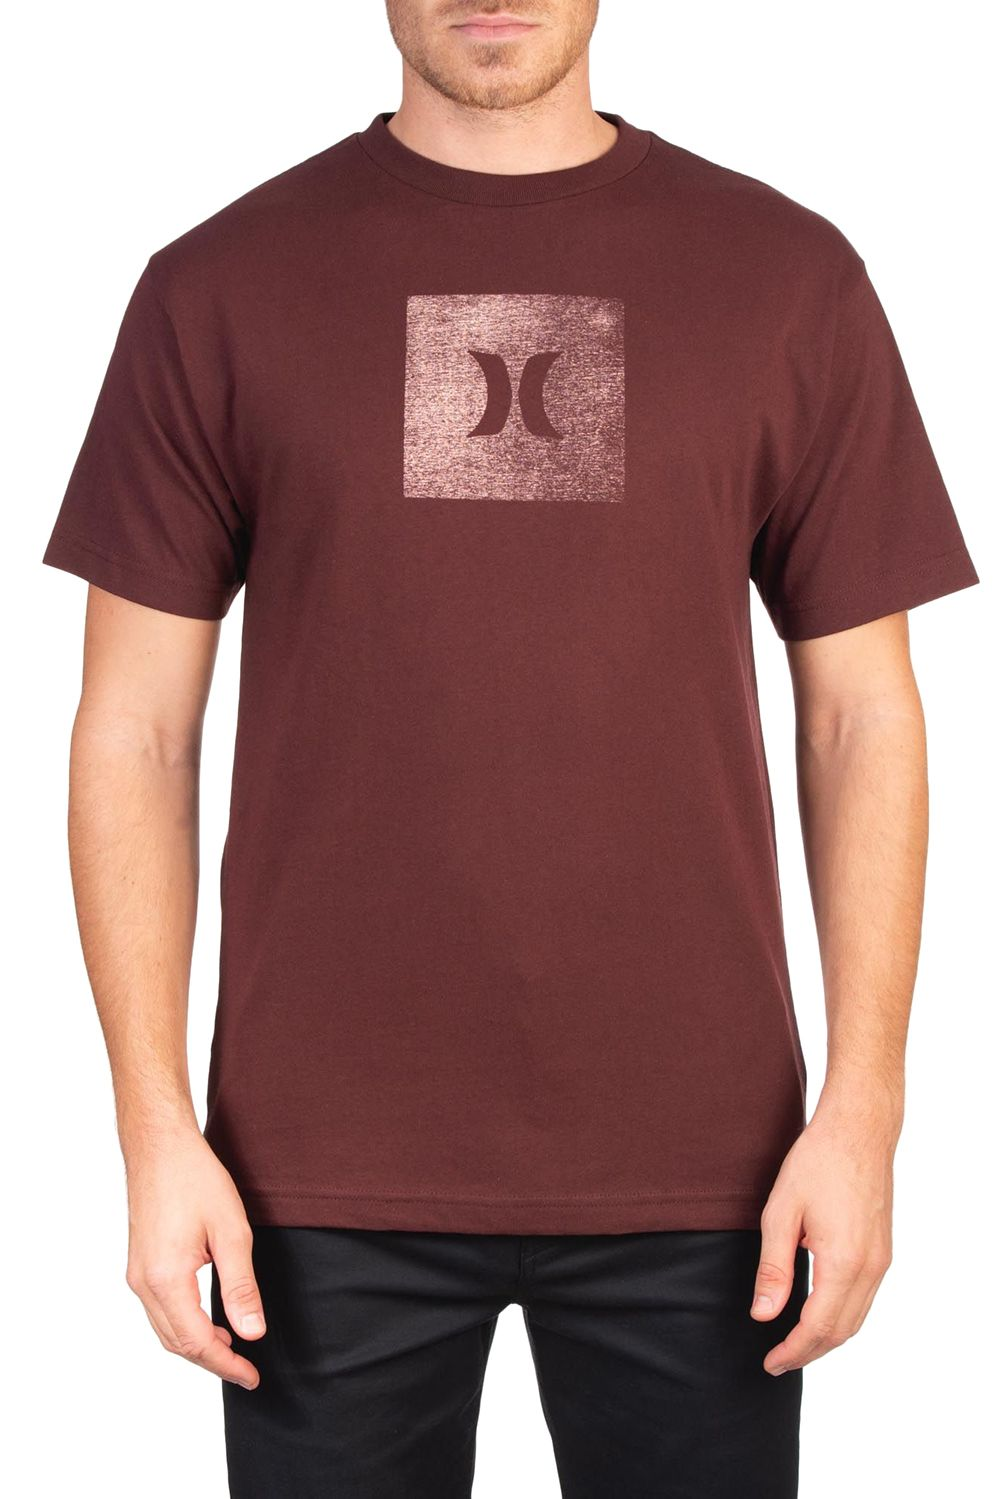 T-Shirt Hurley M CORE ICON BOX TEXTURE S/S Mystic Dates